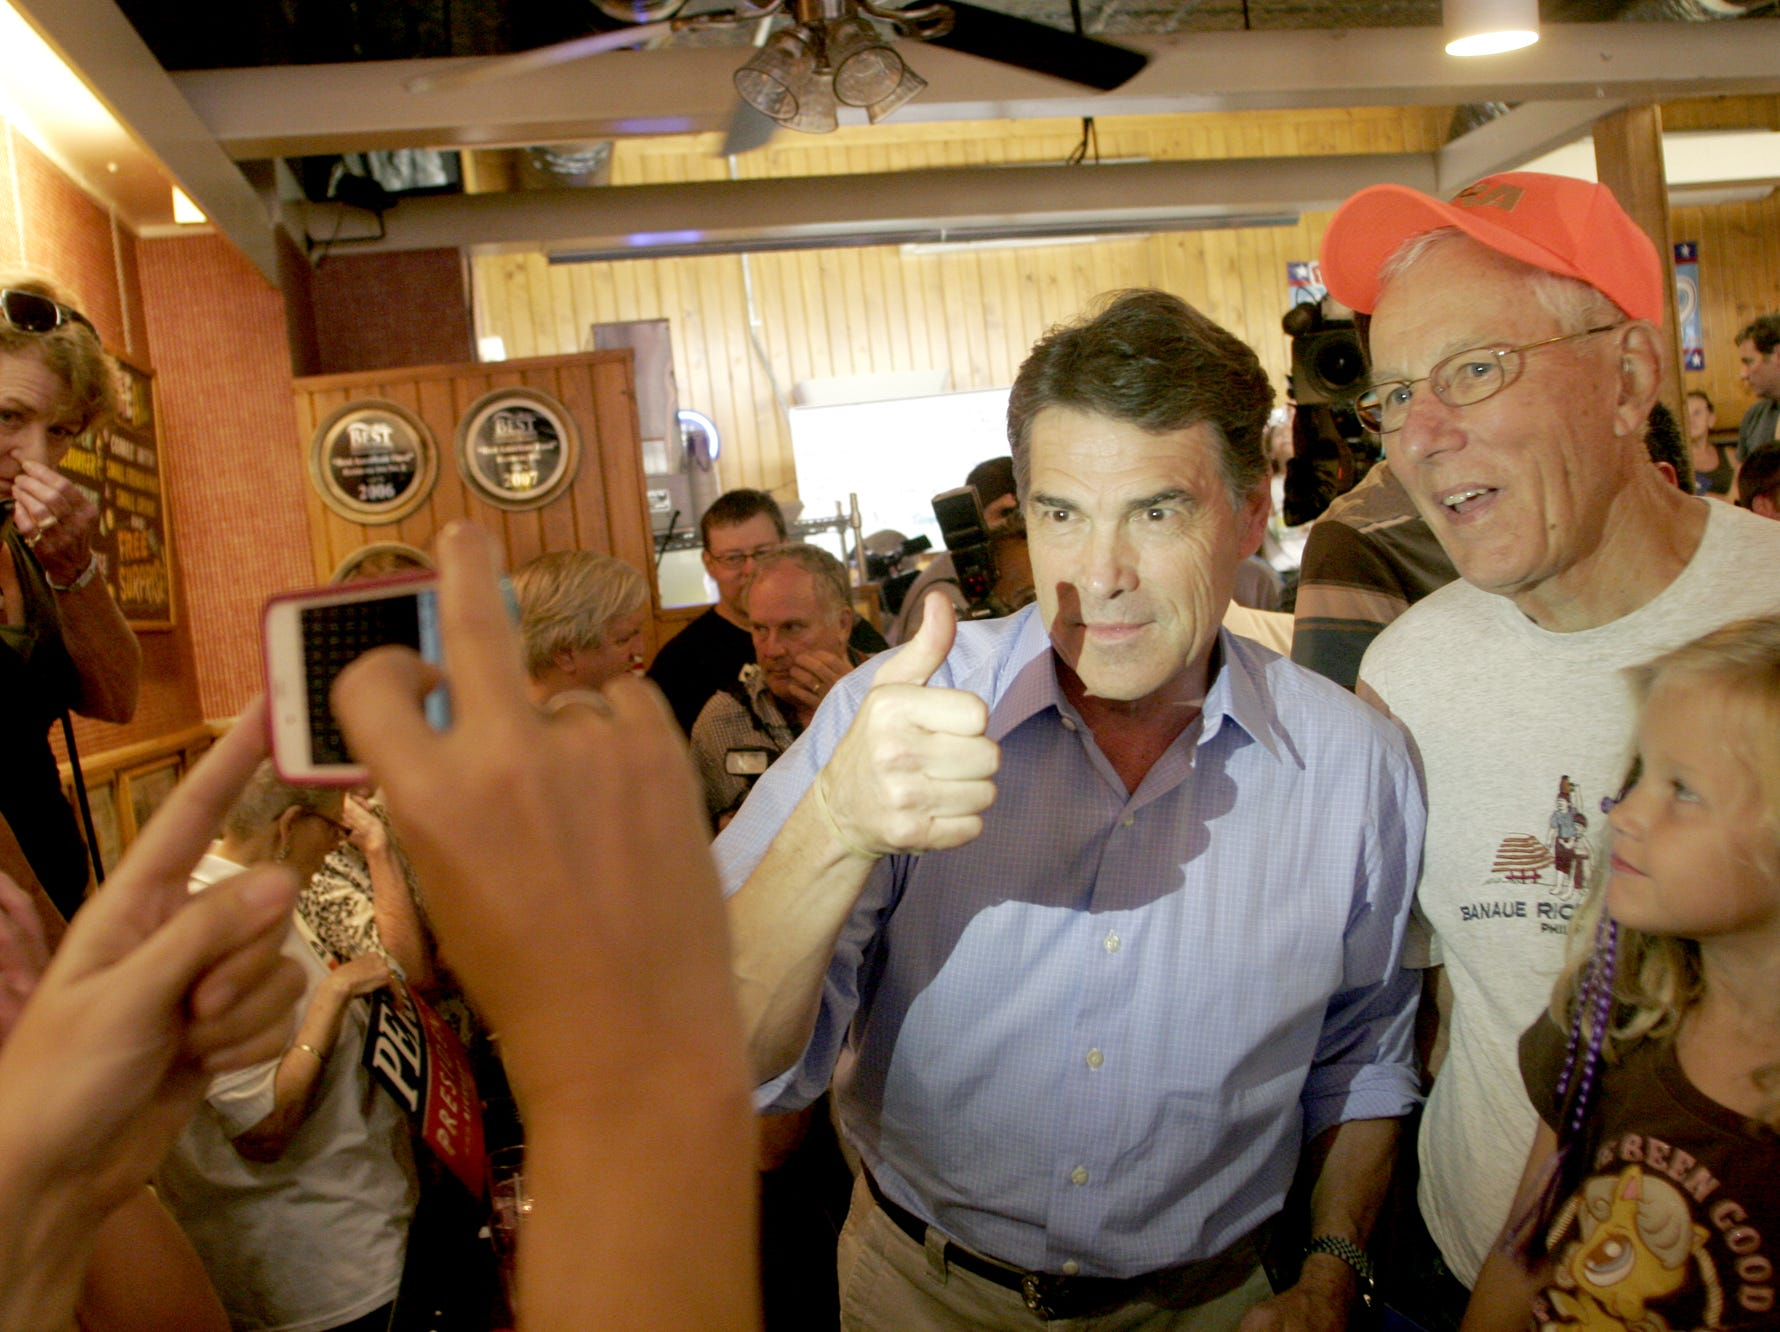 Current Texas Governor and 2012 presidential candidate Rick Perry poses for a picture during a stop at the famed Hamburg Inn on Linn Street near downtown Iowa City, IA on Monday, August 15, 2011.